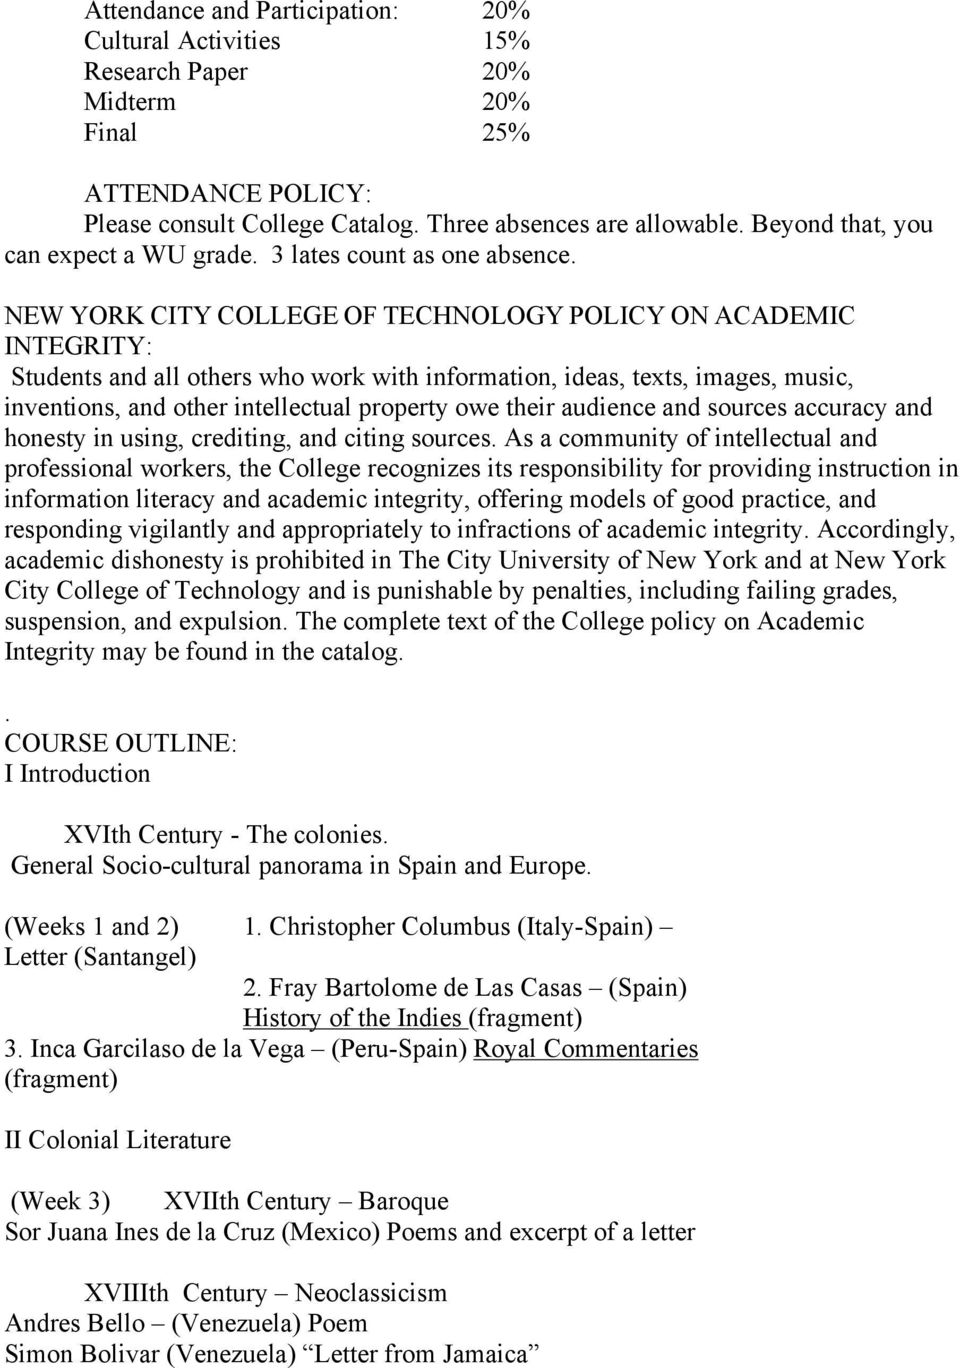 NEW YORK CITY COLLEGE OF TECHNOLOGY POLICY ON ACADEMIC INTEGRITY: Students and all others who work with information, ideas, texts, images, music, inventions, and other intellectual property owe their